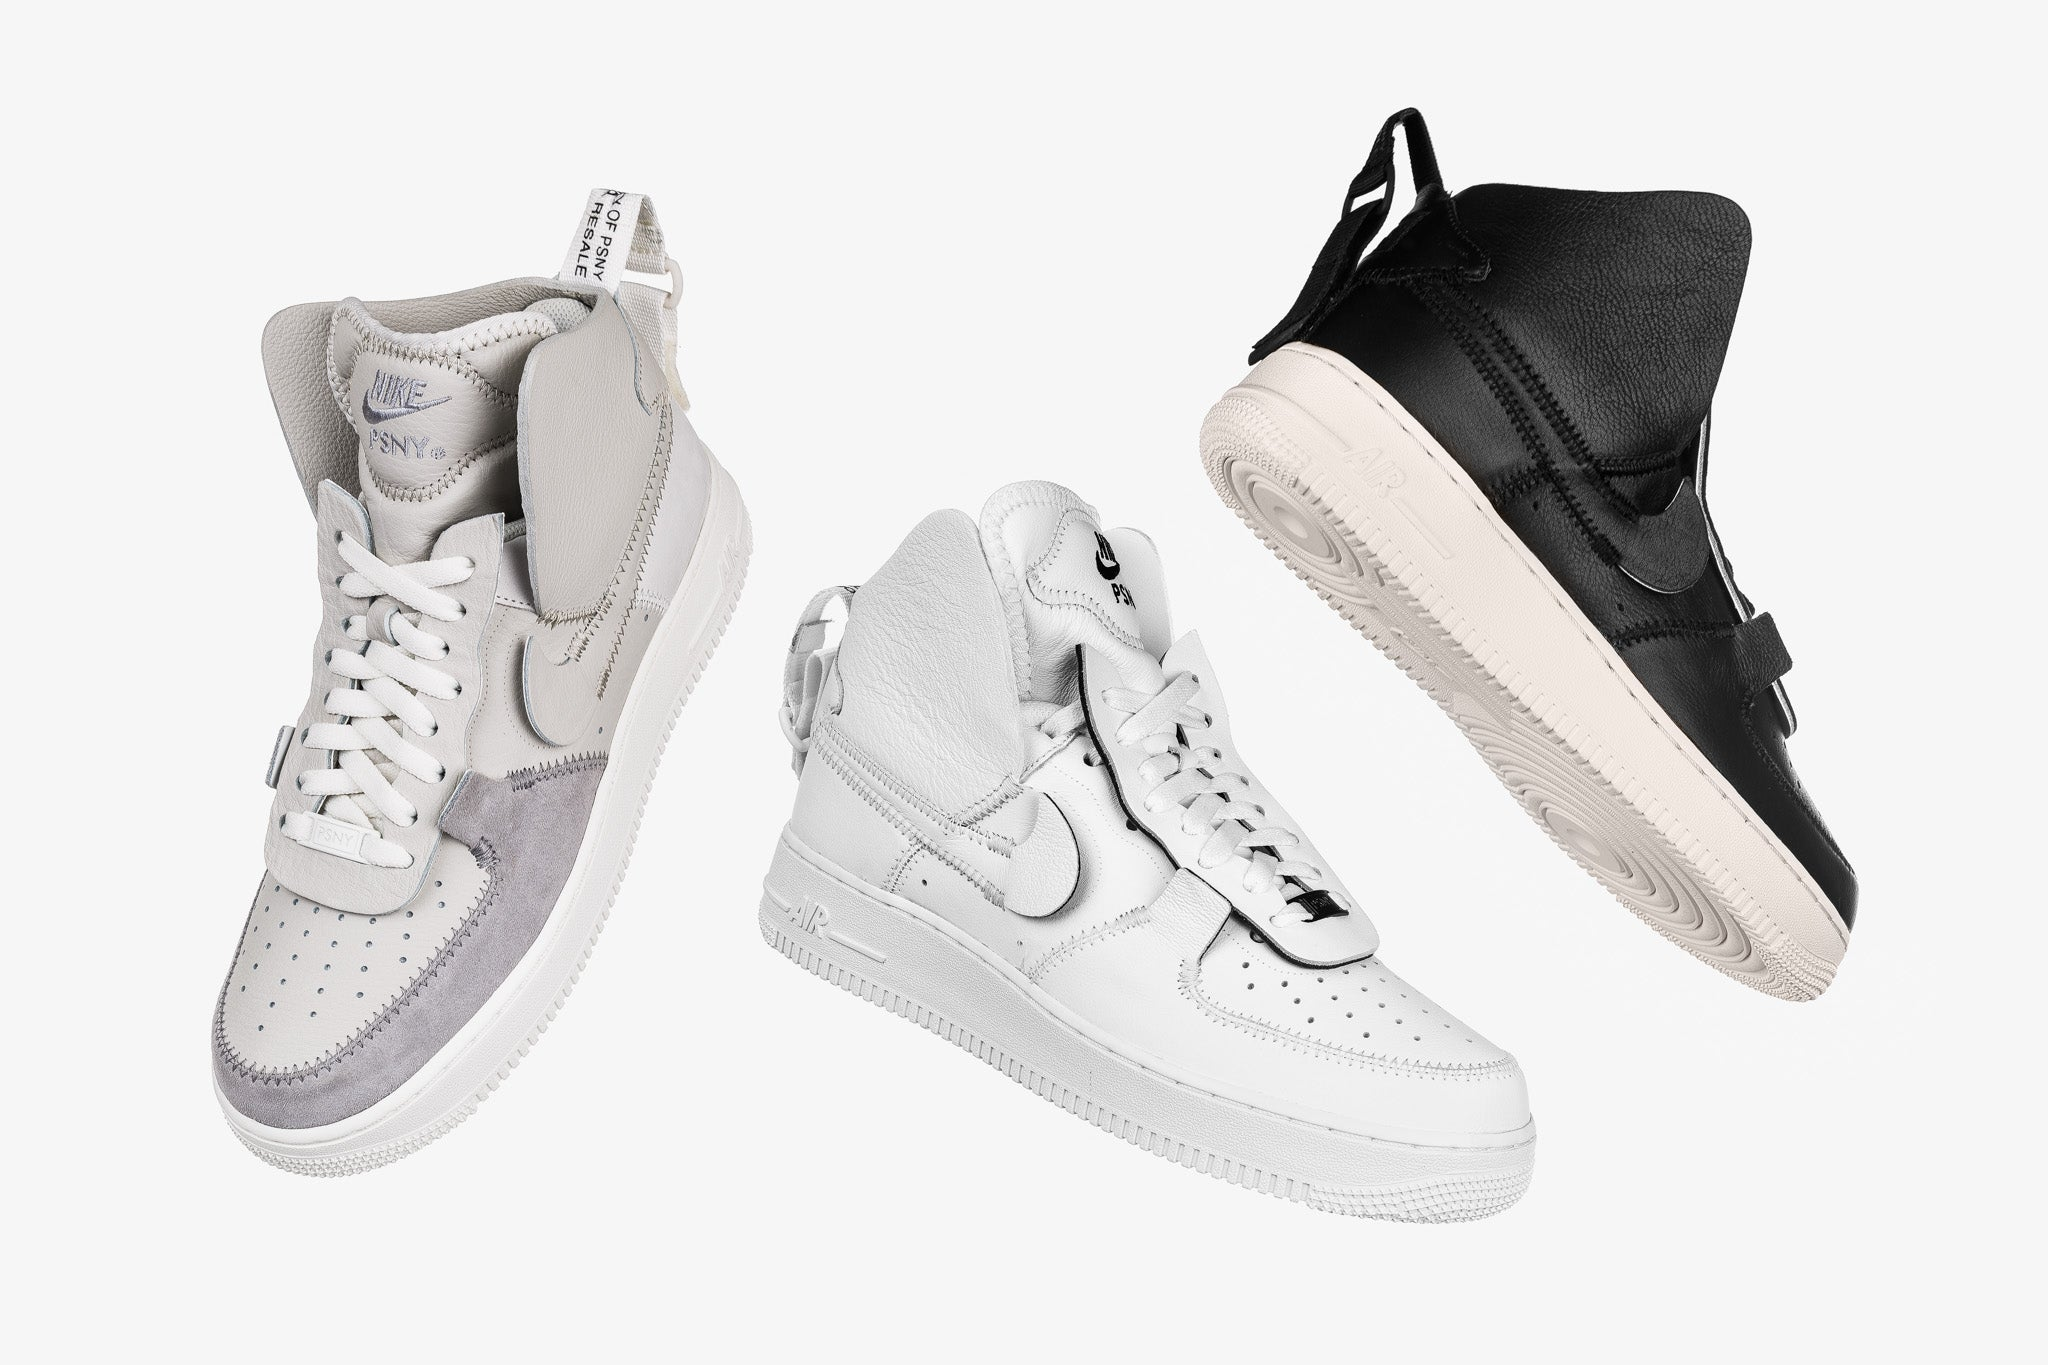 quality design 23071 898d5 PSNY x Air Force 1 HI Collection 09.05.18